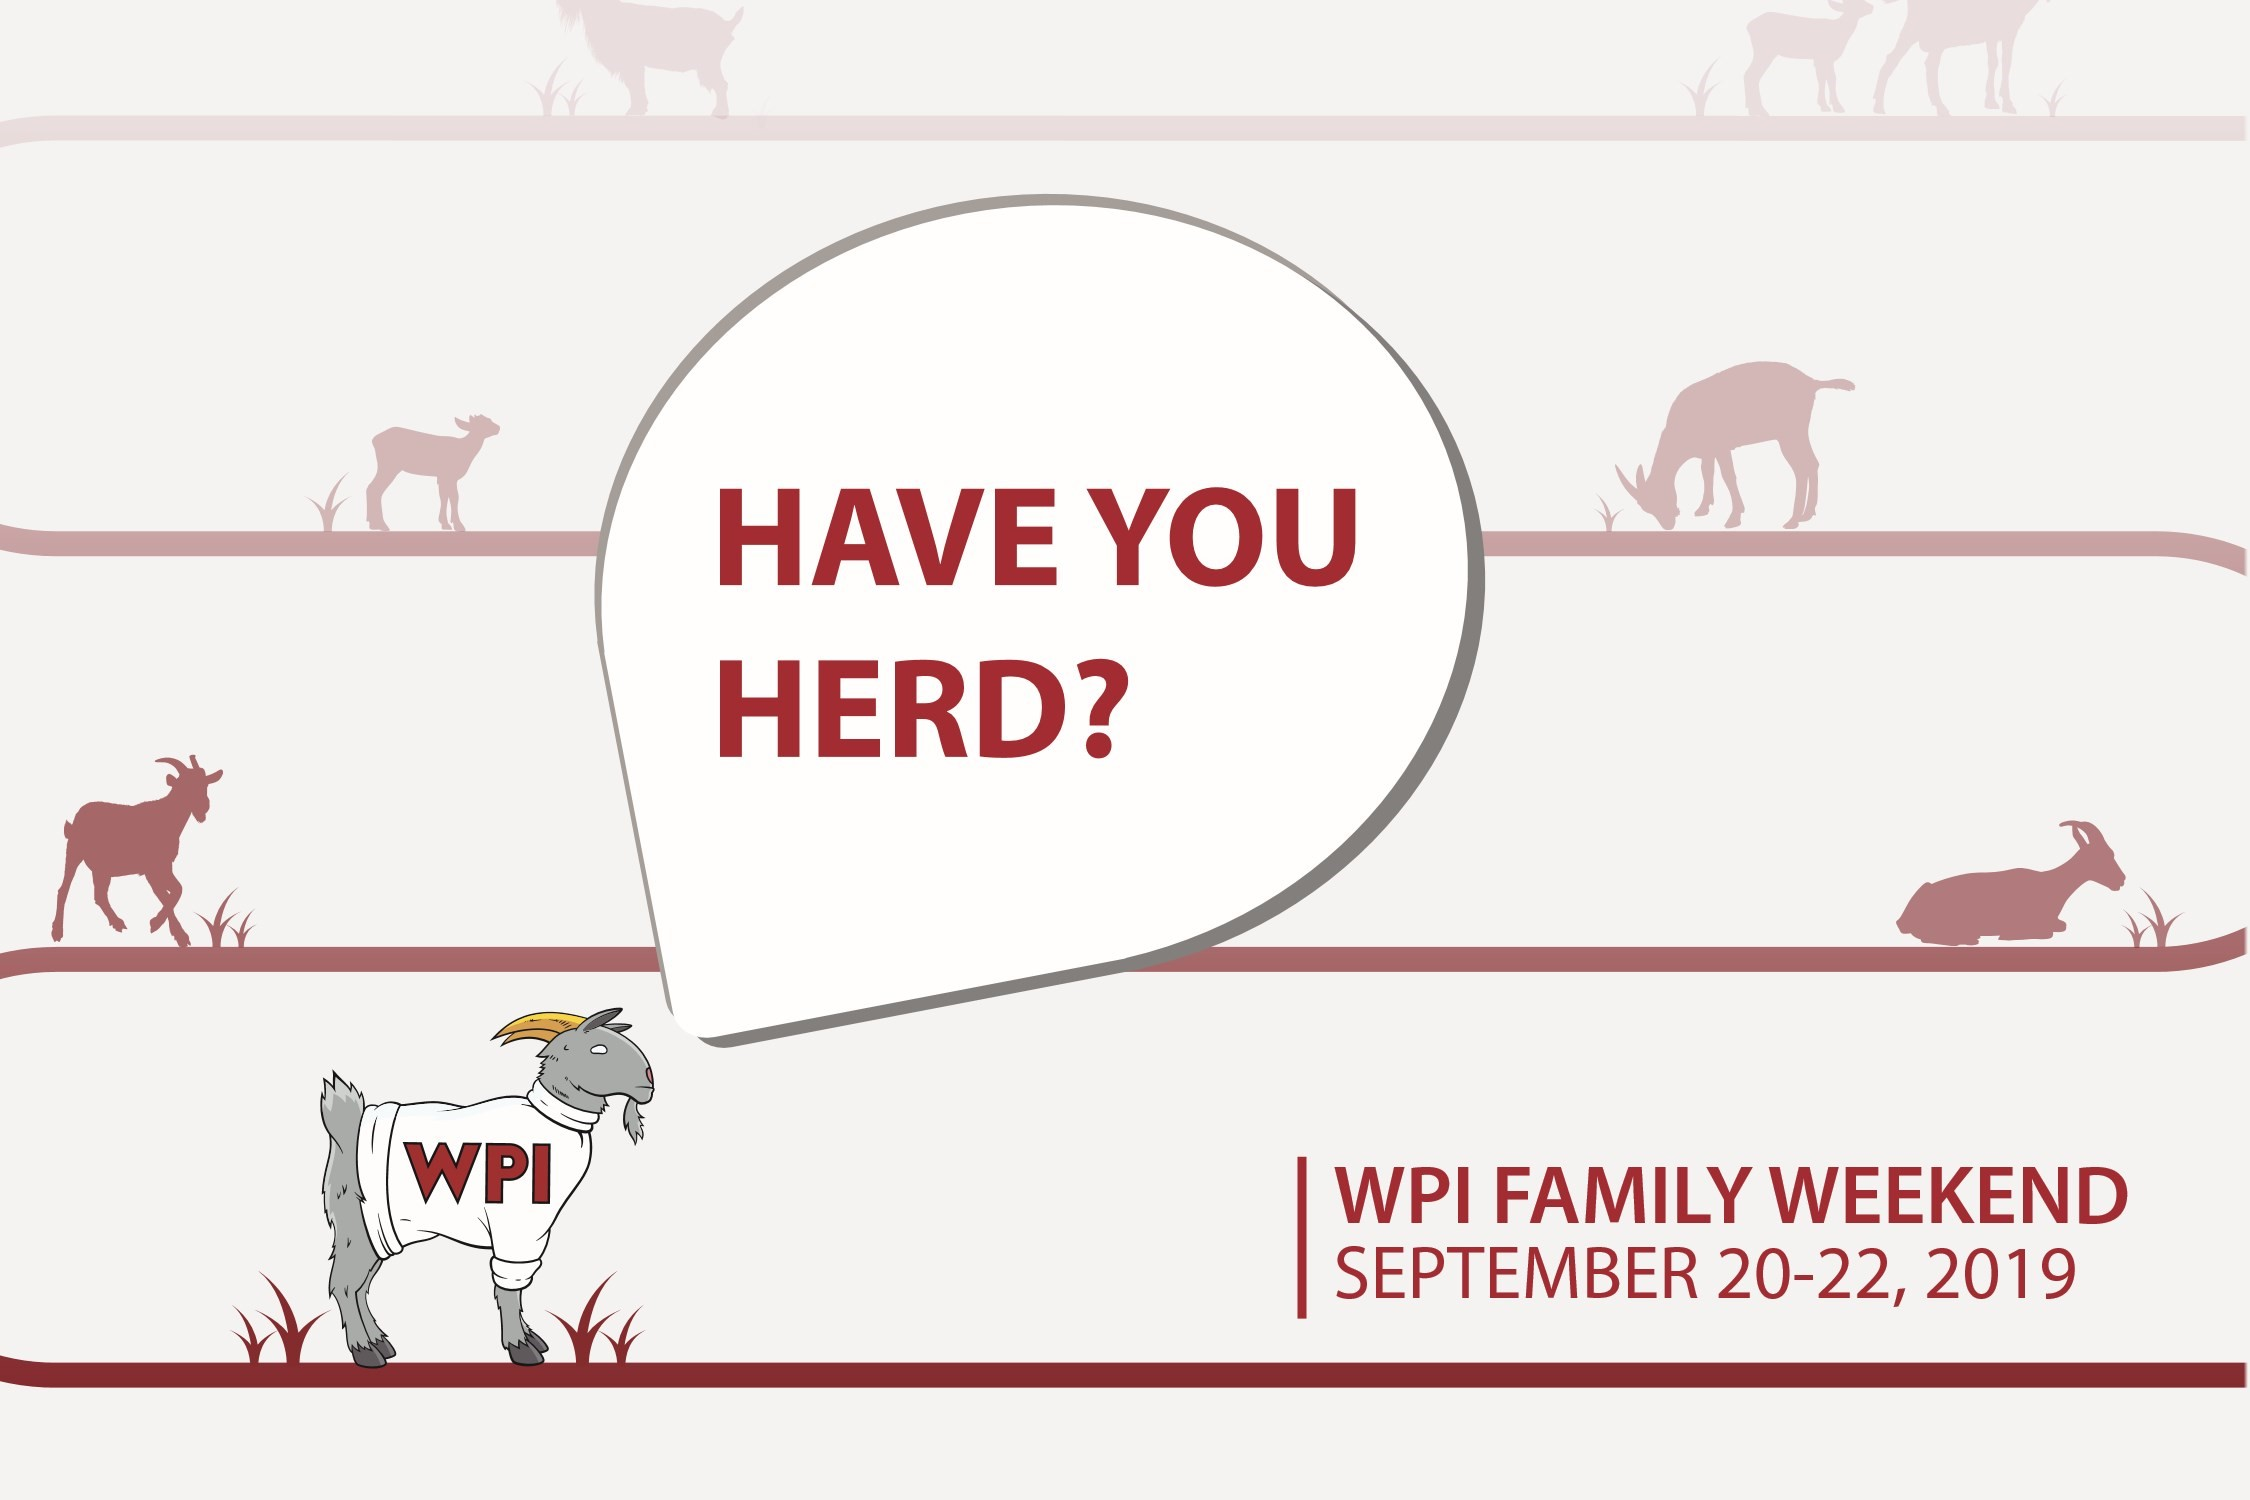 WPI Family Weekend